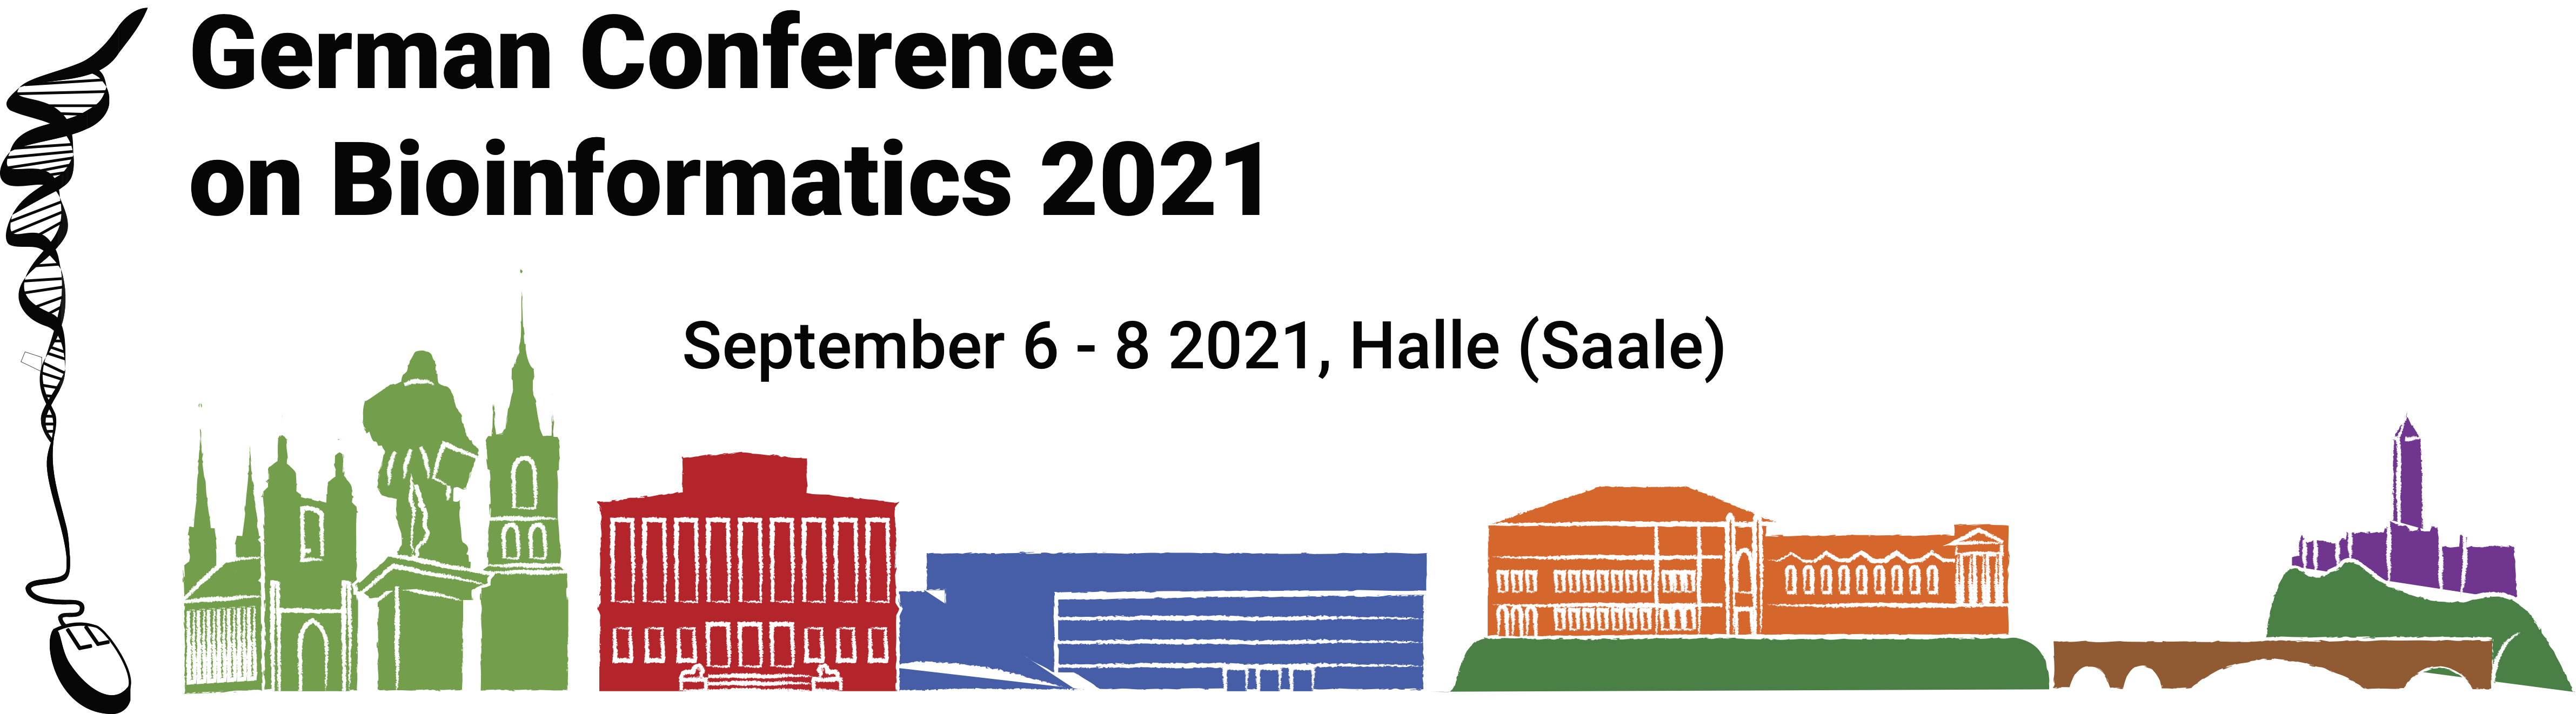 German Conference on Bioinformatics (GCB) 2021